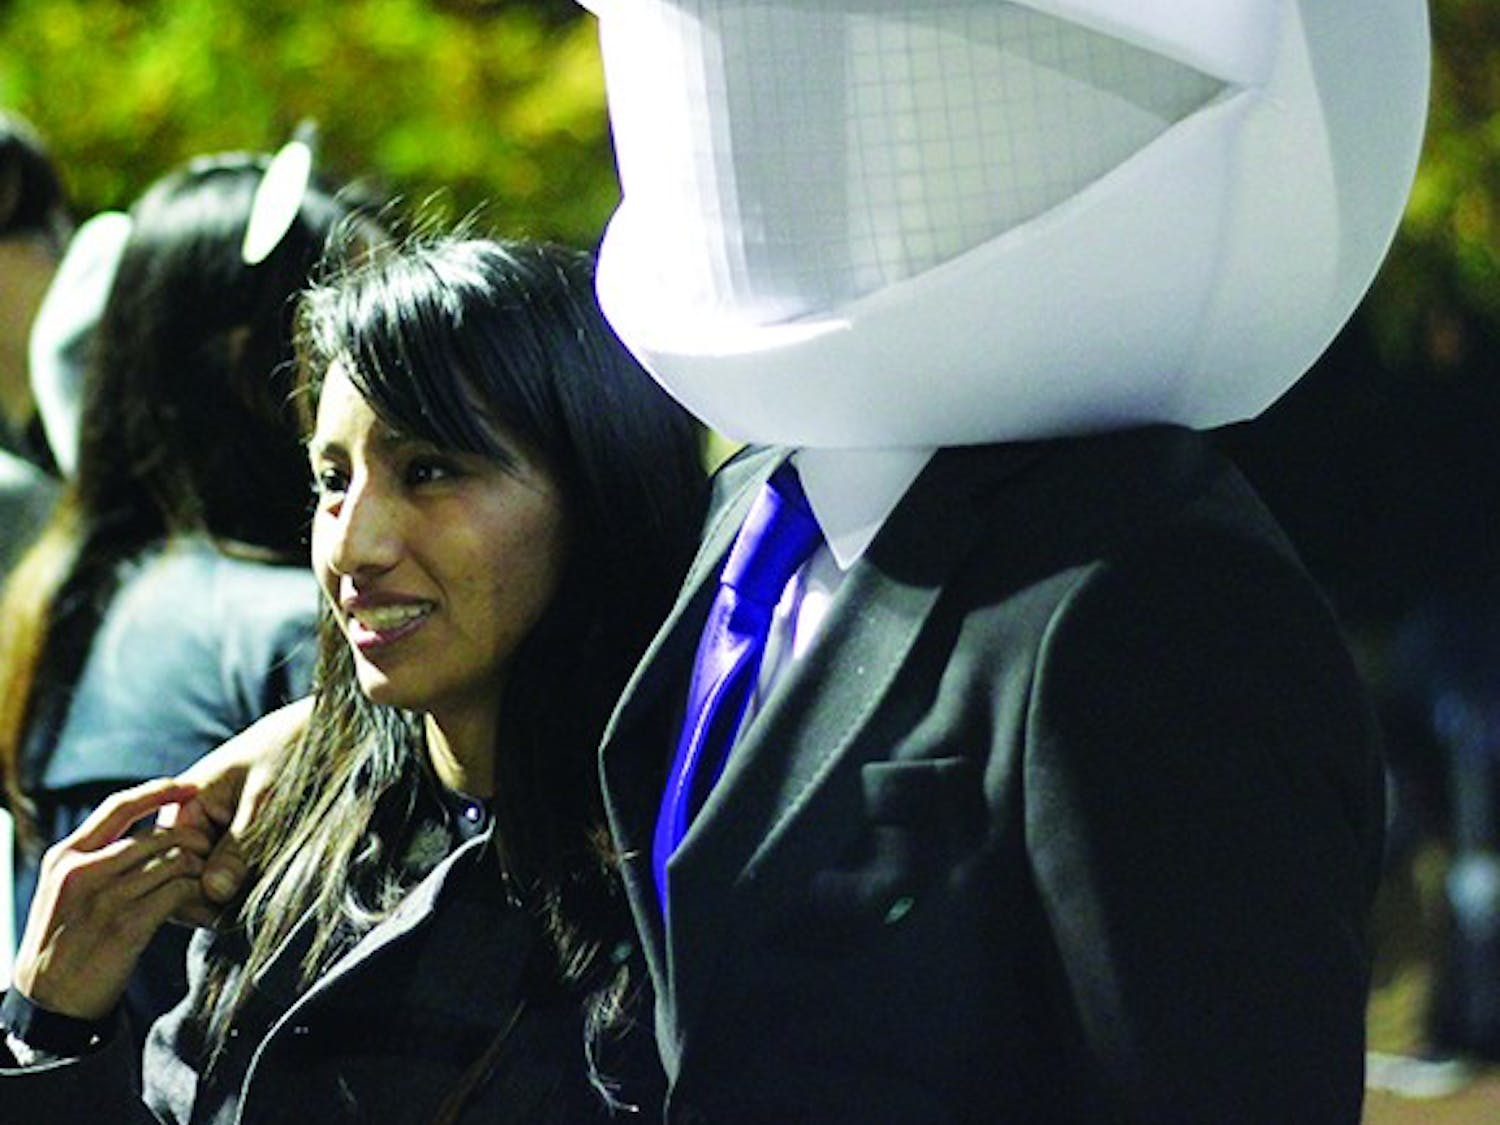 """Revelers swarmed the street October 31st to celebrate Halloween on Franklin Street. Around 300 officers were present to make sure the the fifth year of """"Homegrown Halloween"""" went off without a hitch in downtown Chapel Hill."""